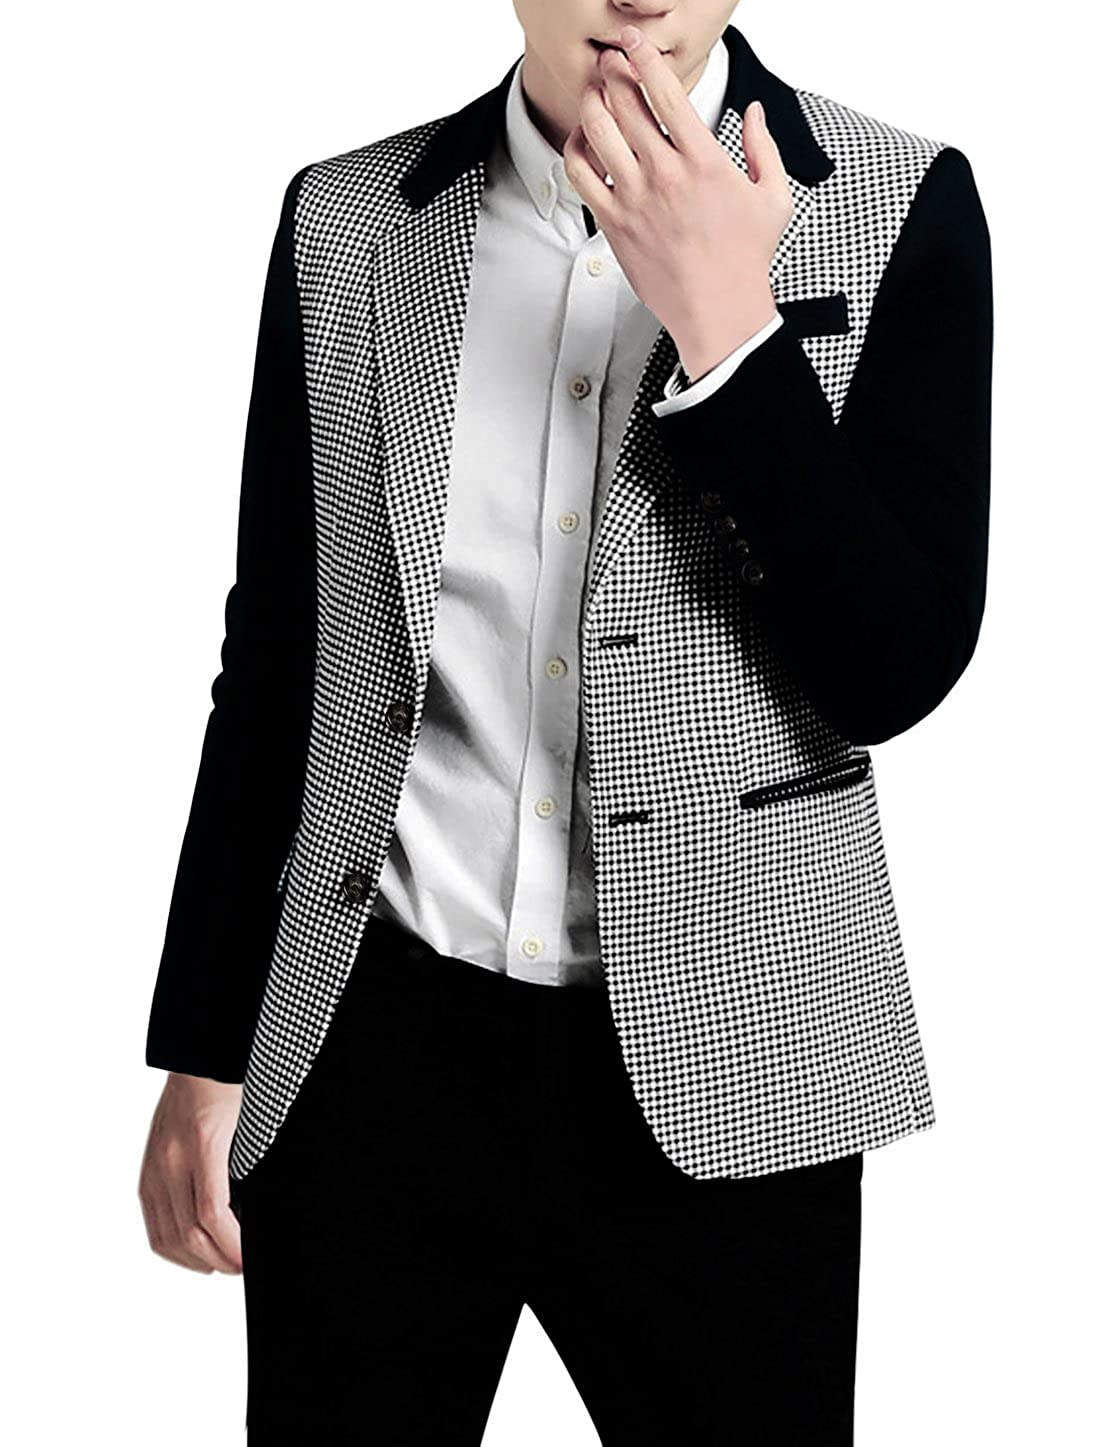 1950s Style Mens Suits | 50s Suits uxcell Men Houndstooth Long Sleeve Padded Shoulder Single Breasted Blazer $30.93 AT vintagedancer.com